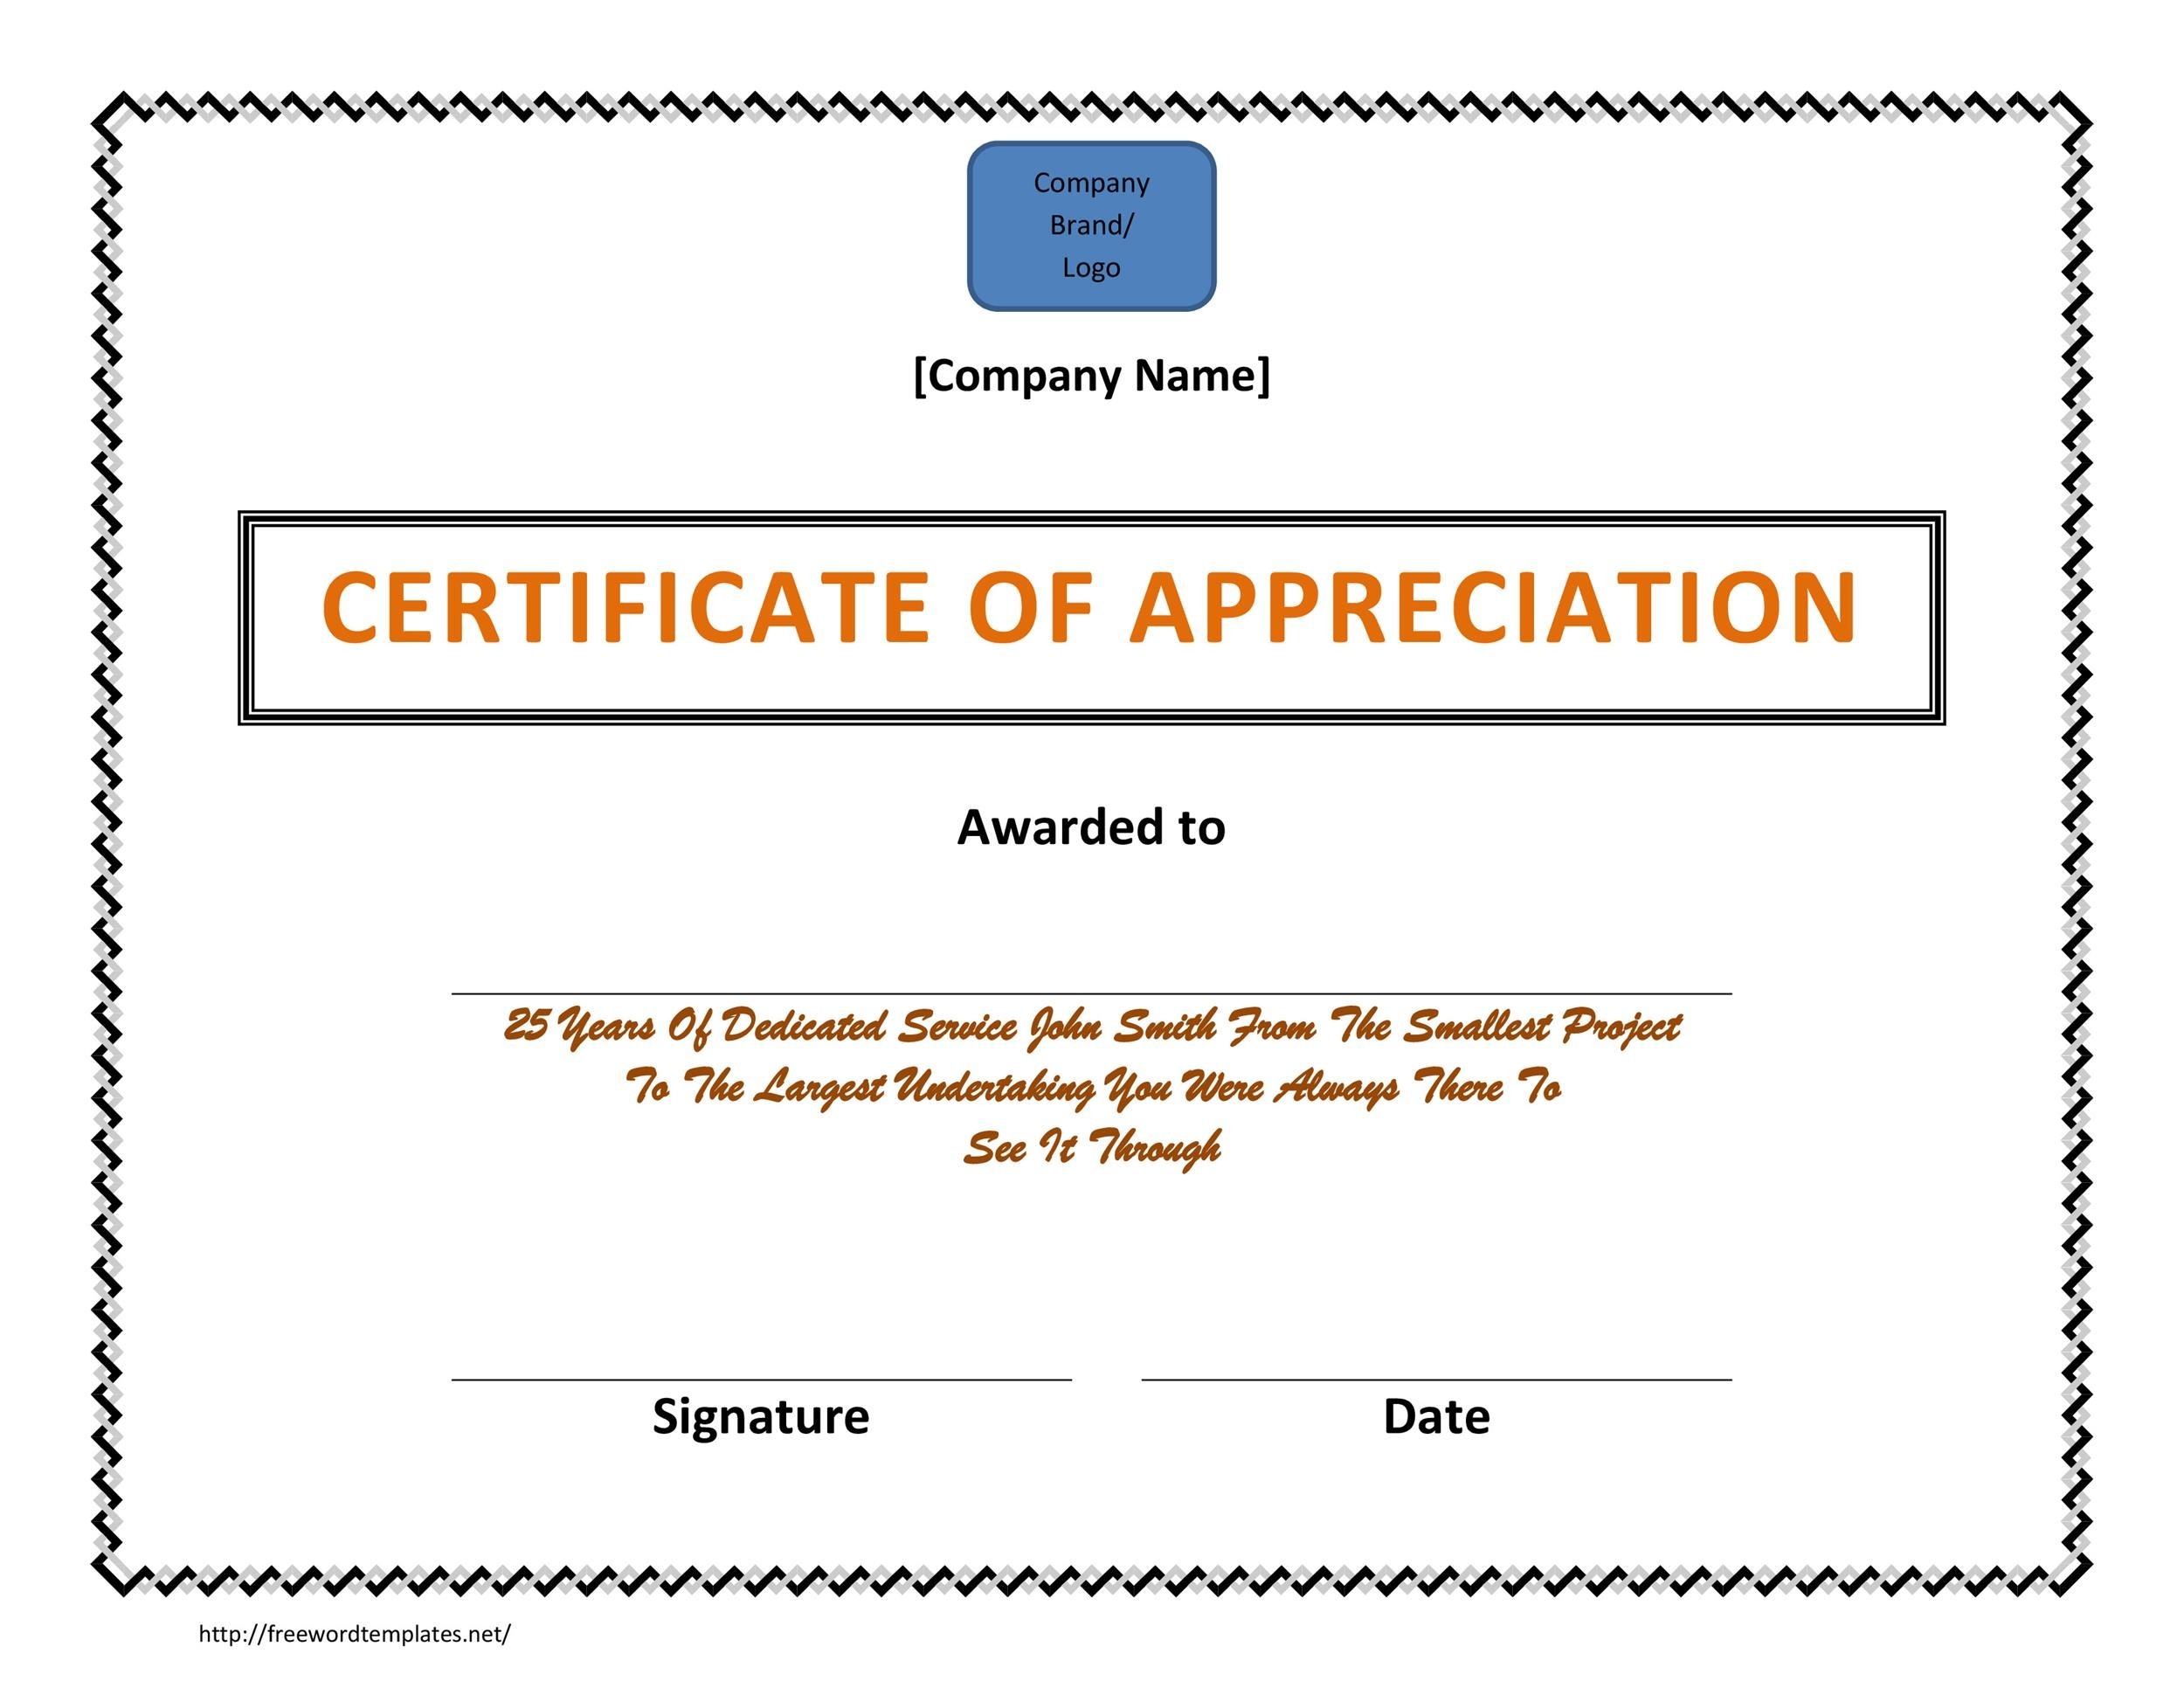 Free certificate of appreciation templates and letters printable certificate of appreciation 05 thecheapjerseys